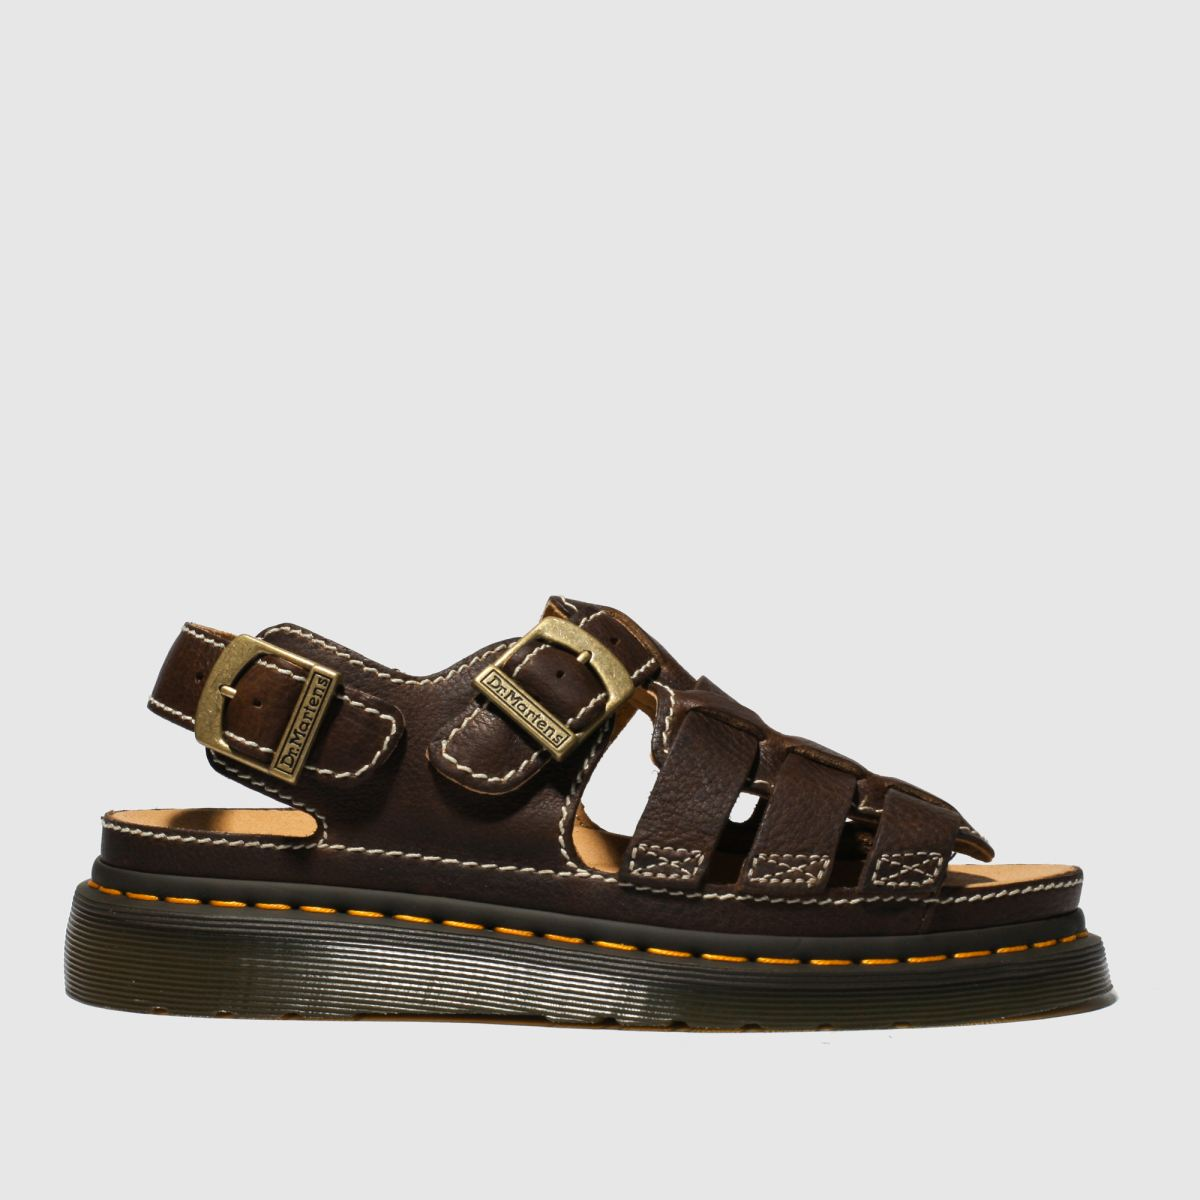 Dr Martens Dark Brown 8092 Arc Sandals